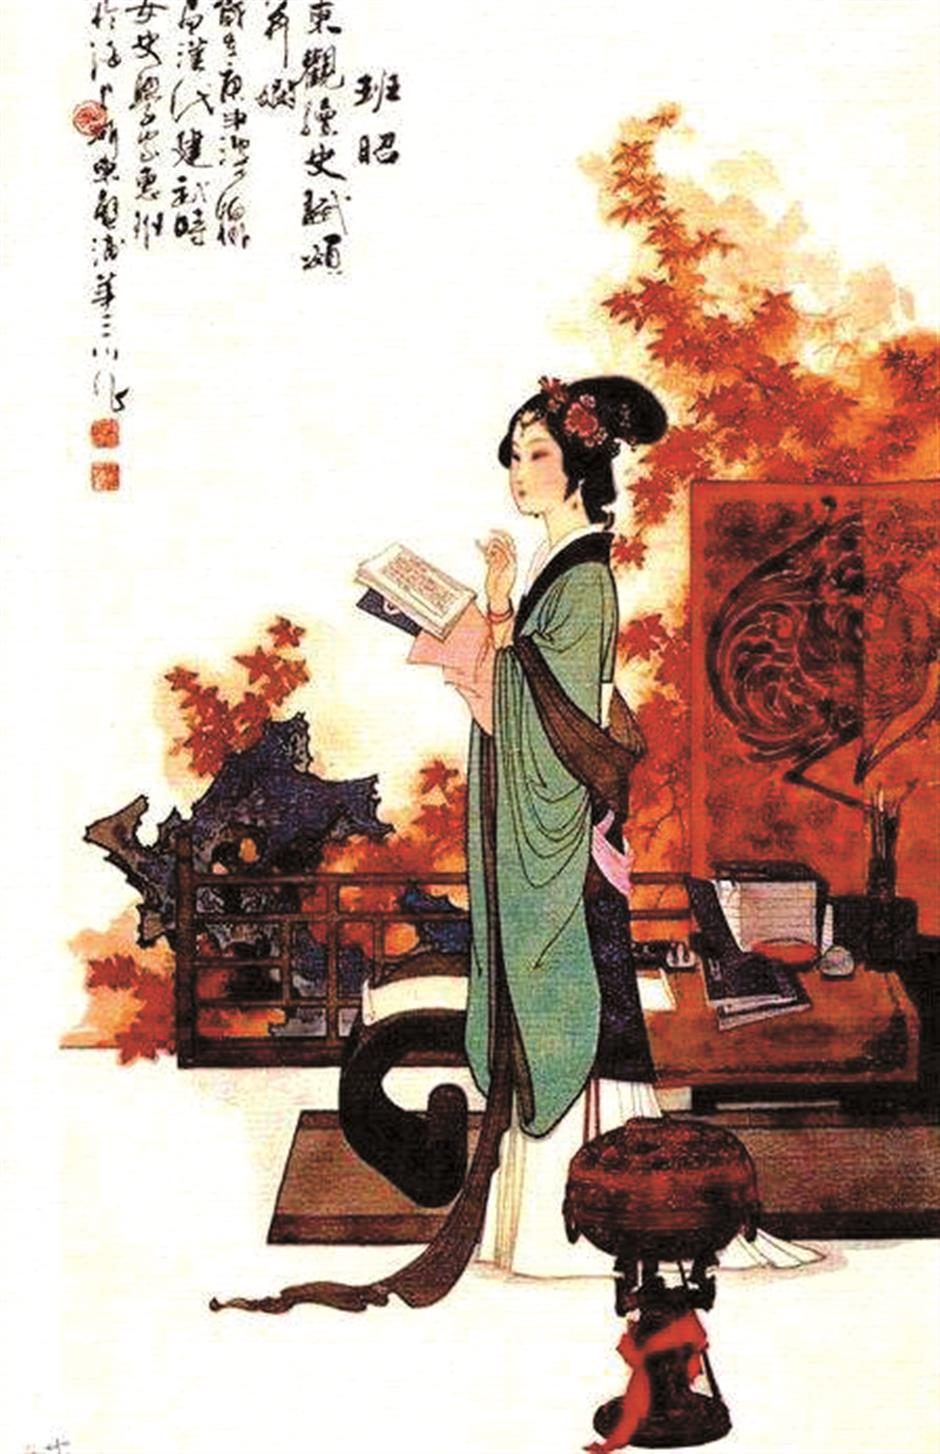 Ban Zhao: influential scholar and female role model from ancient China